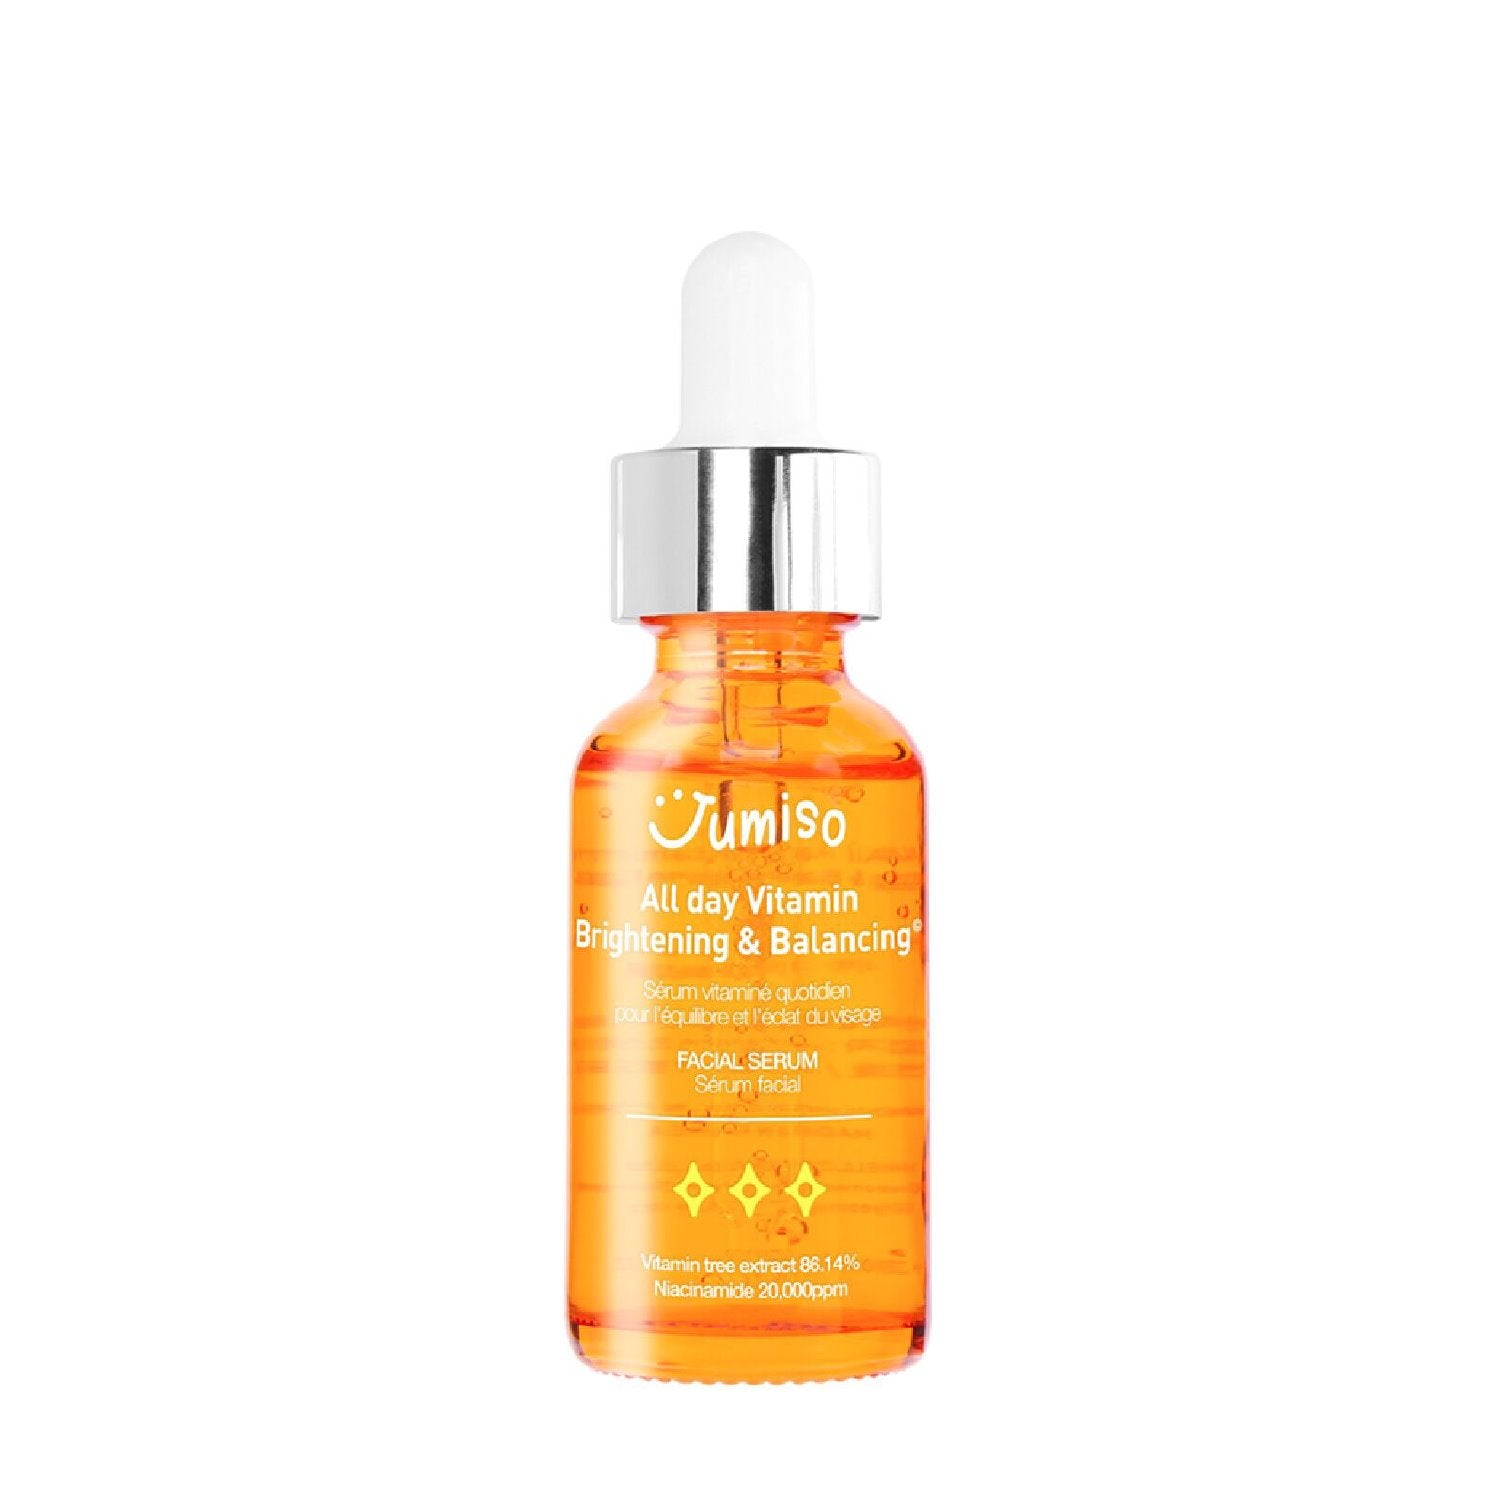 Jumiso All Day Vitamin Brightening & Balancing Facial Serum (30ml) Serum - Skinspace